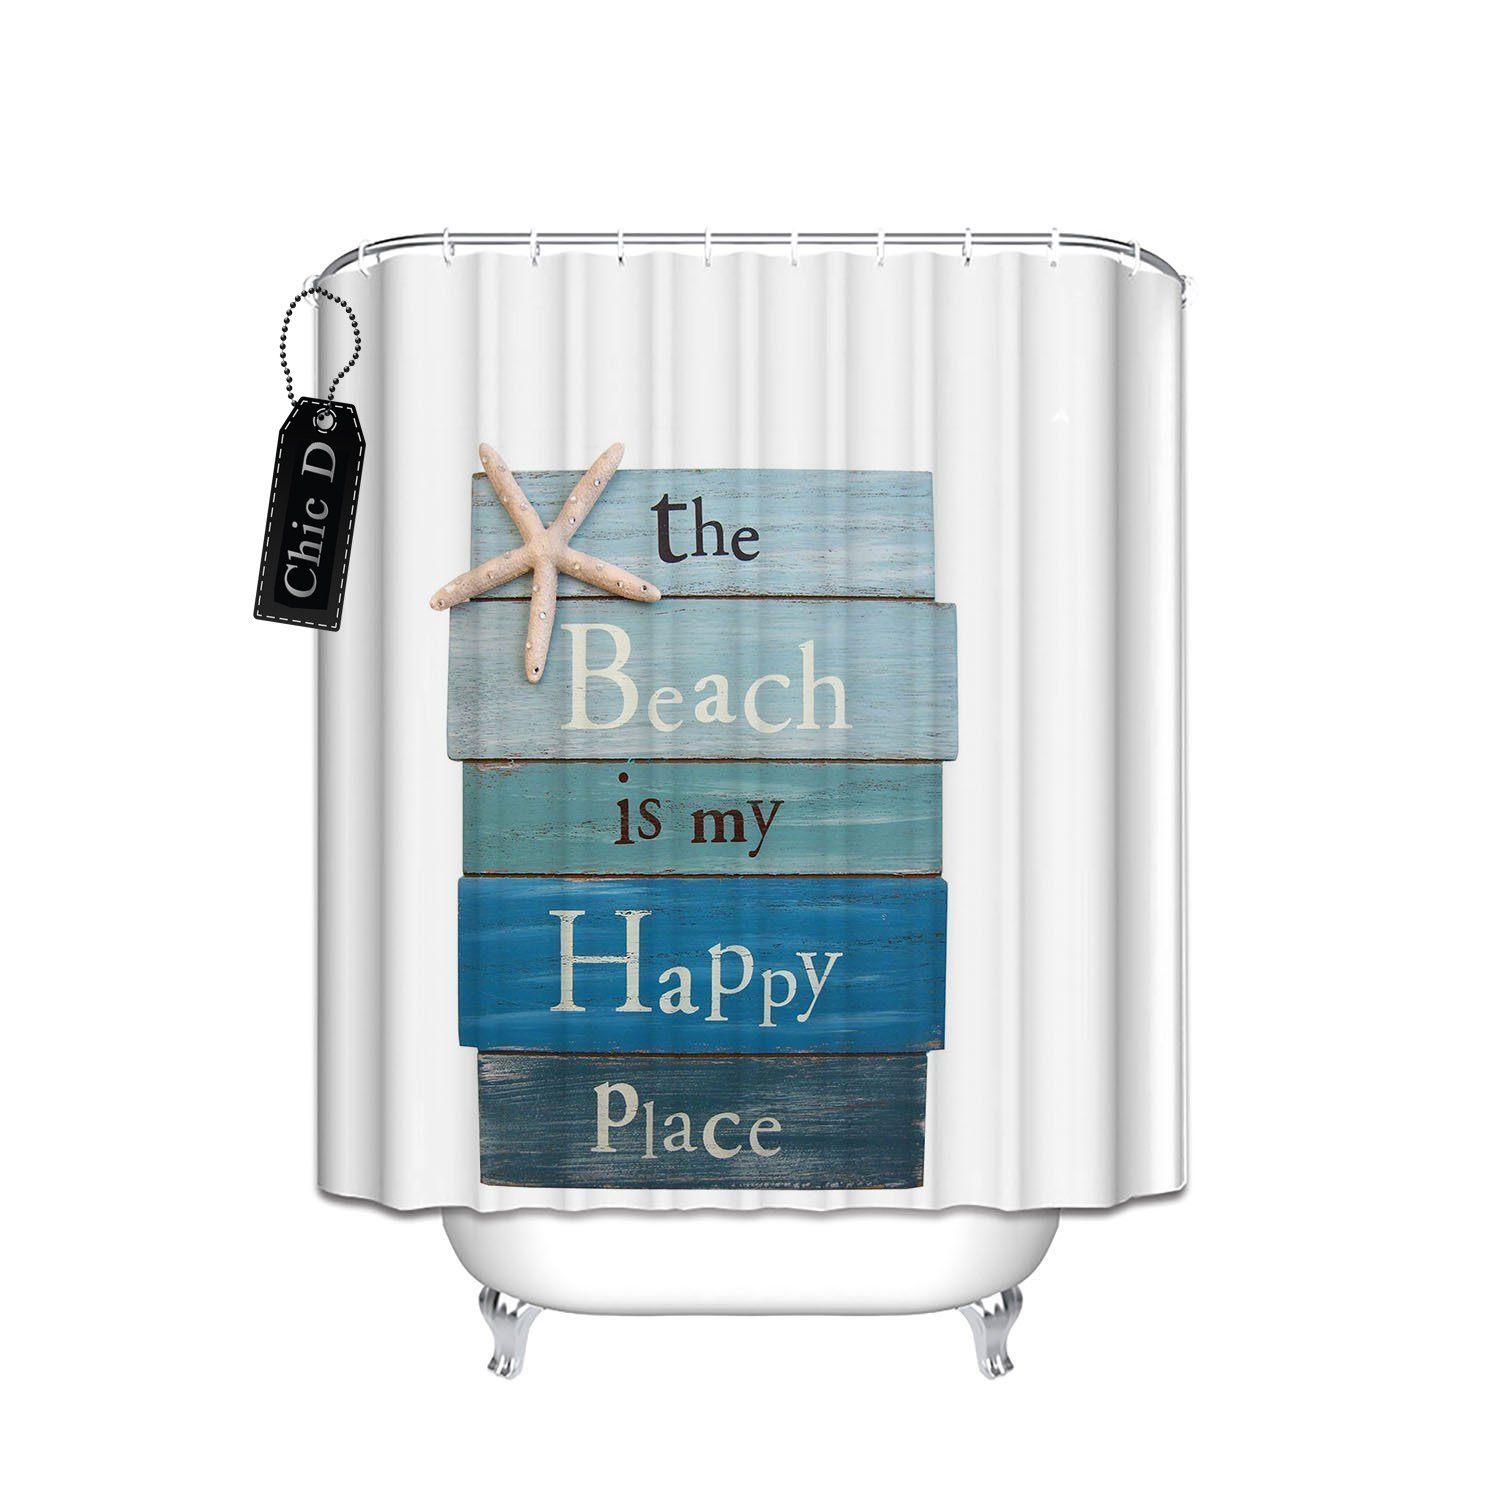 beach themed starfish shower curtain small stall size 36 x 72 inch ebay. Black Bedroom Furniture Sets. Home Design Ideas